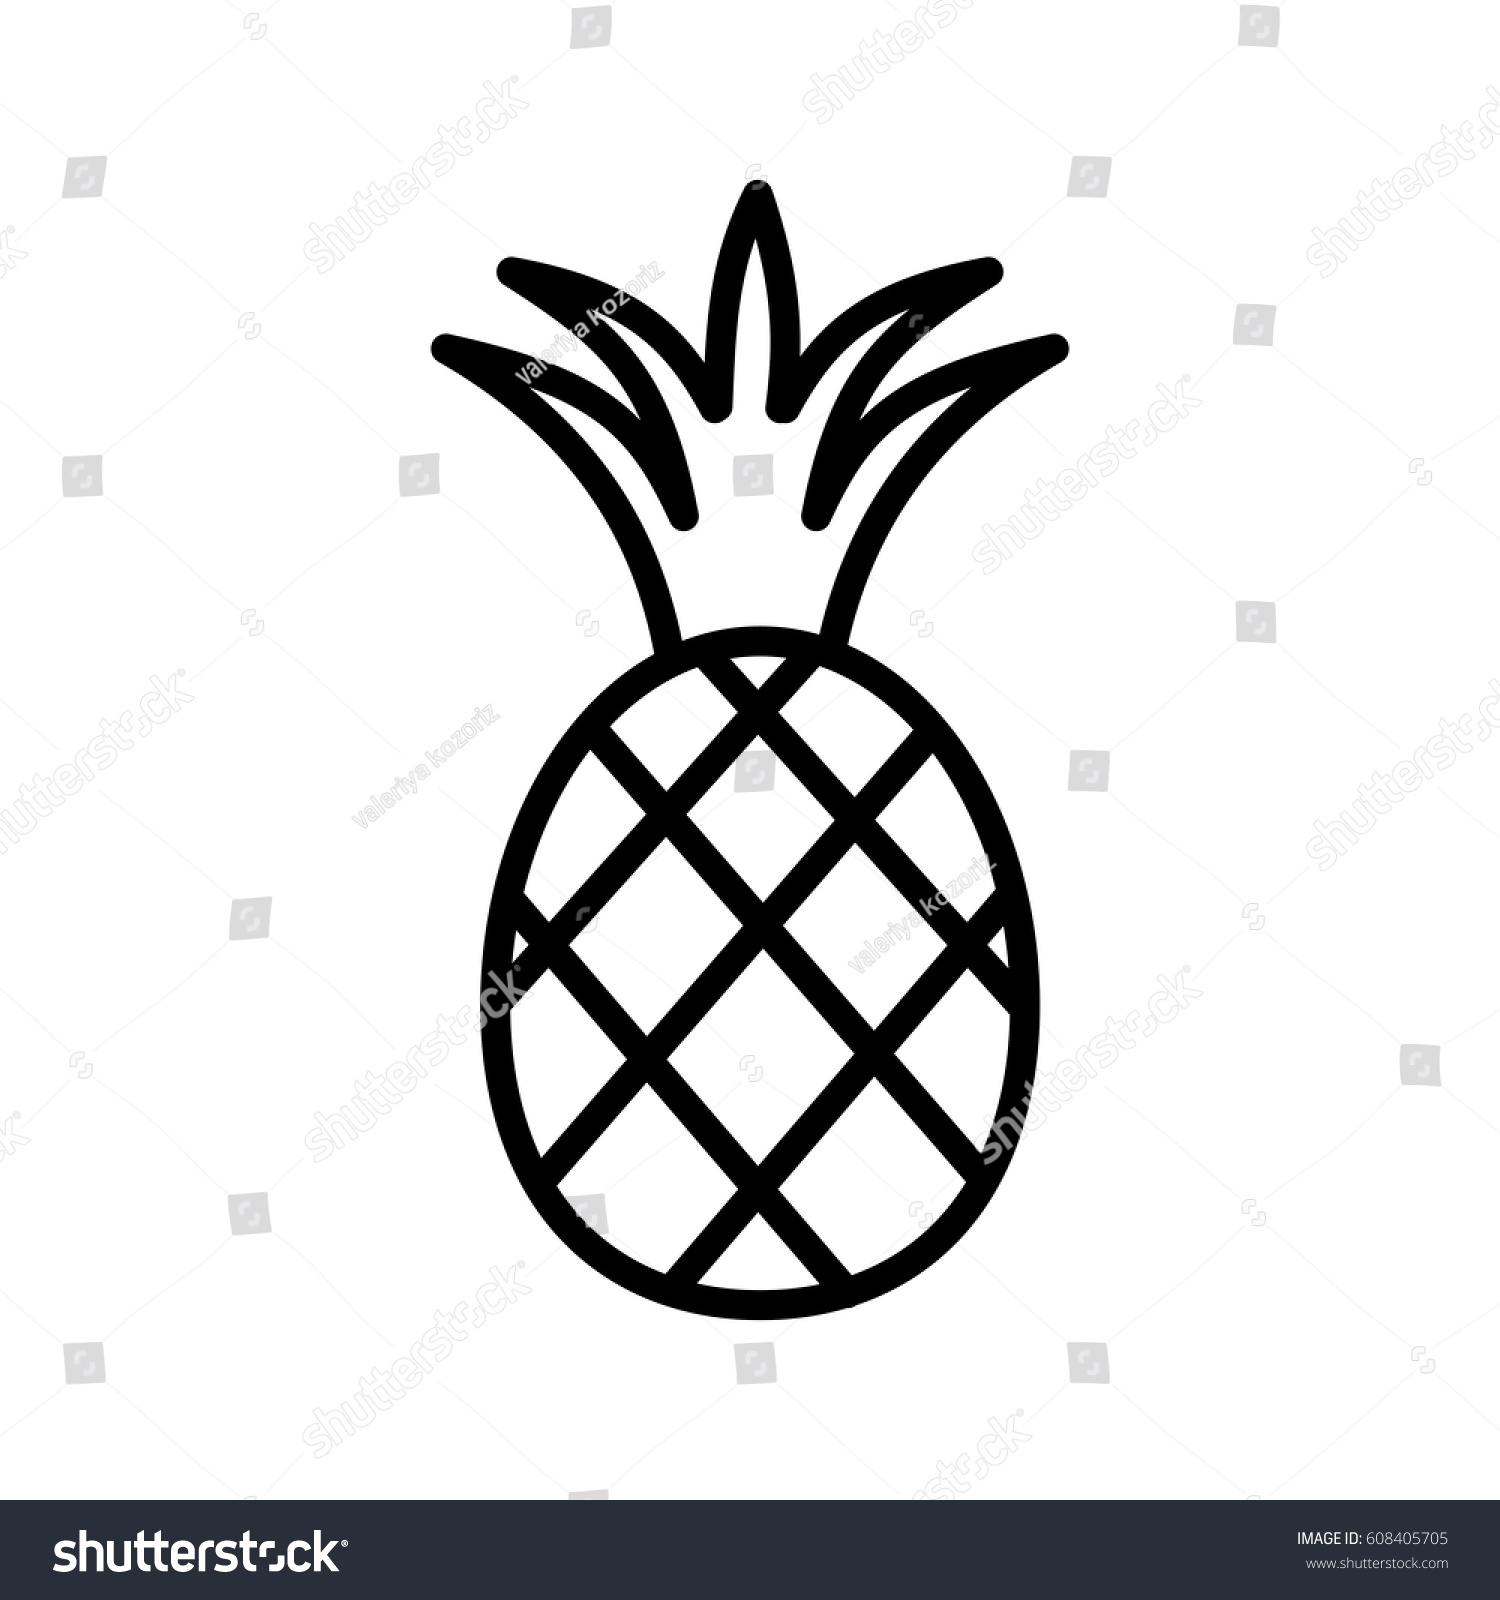 Pineapple Fruit Leaf Line Icon Black Stock Vector 608405705 ... for Clipart Pineapple Black And White  555kxo